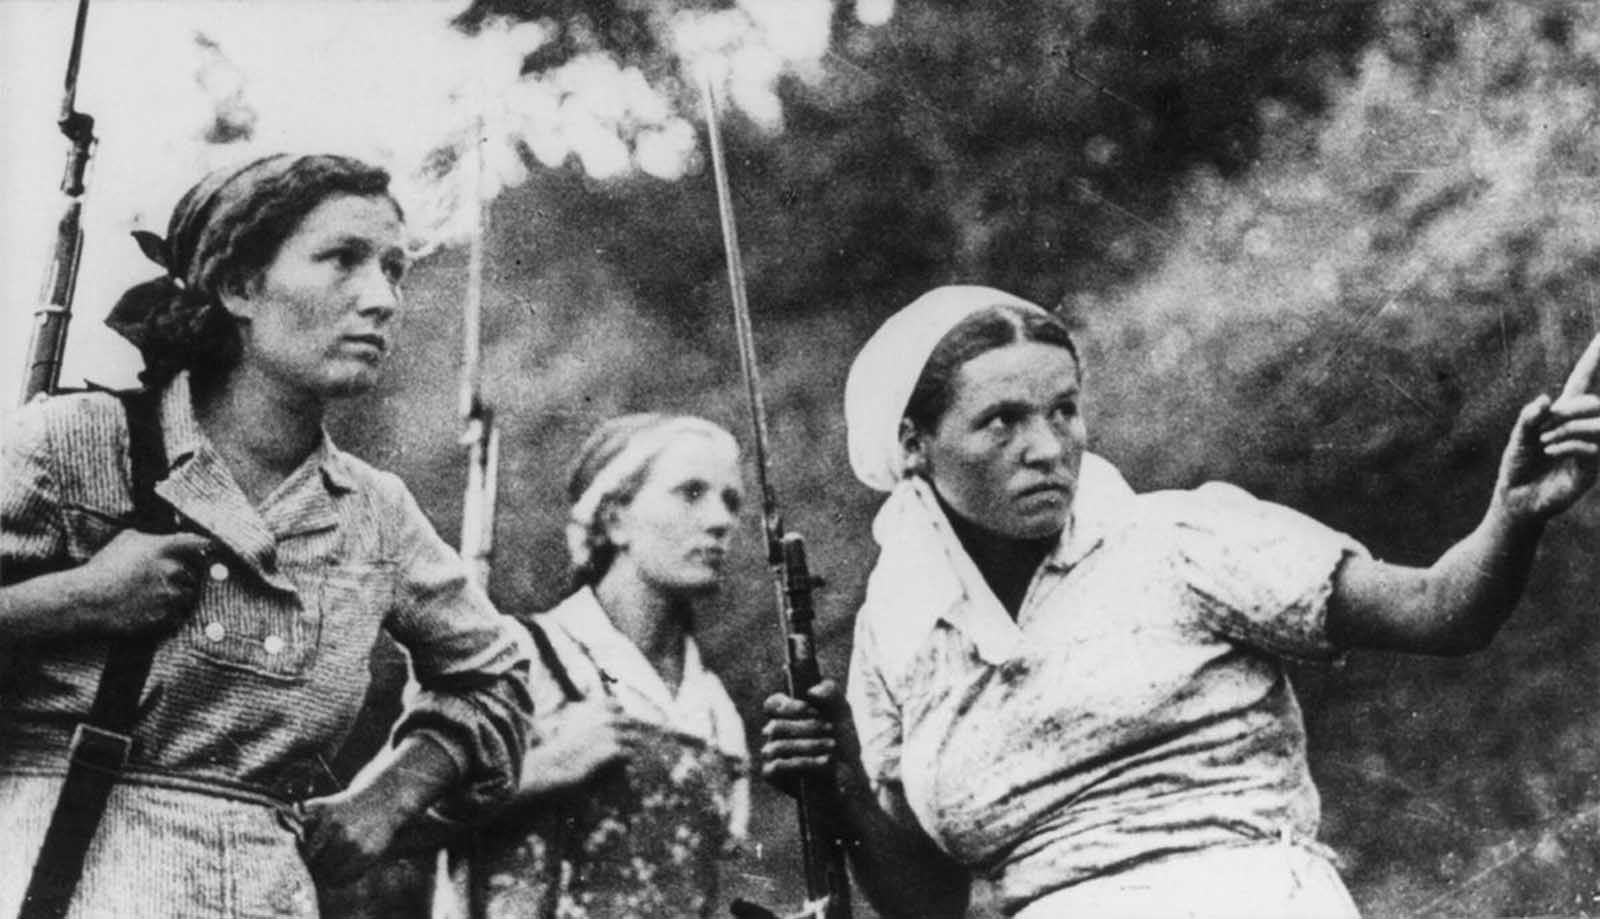 Three Soviet guerrillas in action in Russia during World War II.